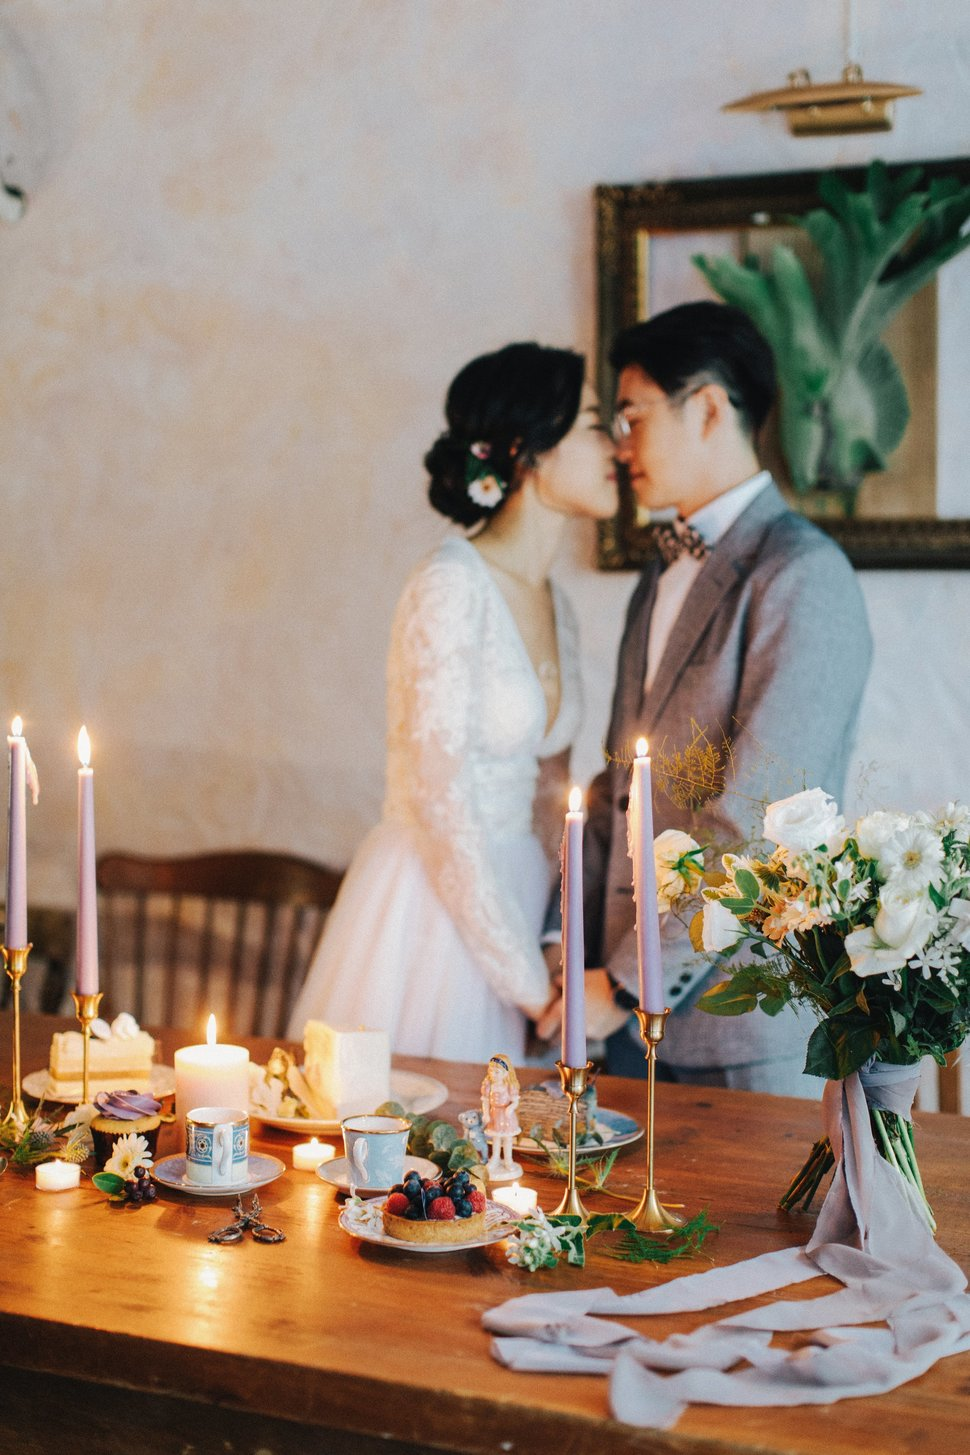 美式婚紗-自助婚紗-Amazing Grace攝影-台中婚紗- Amazing Grace Studio39 - Amazing Grace Studio《結婚吧》